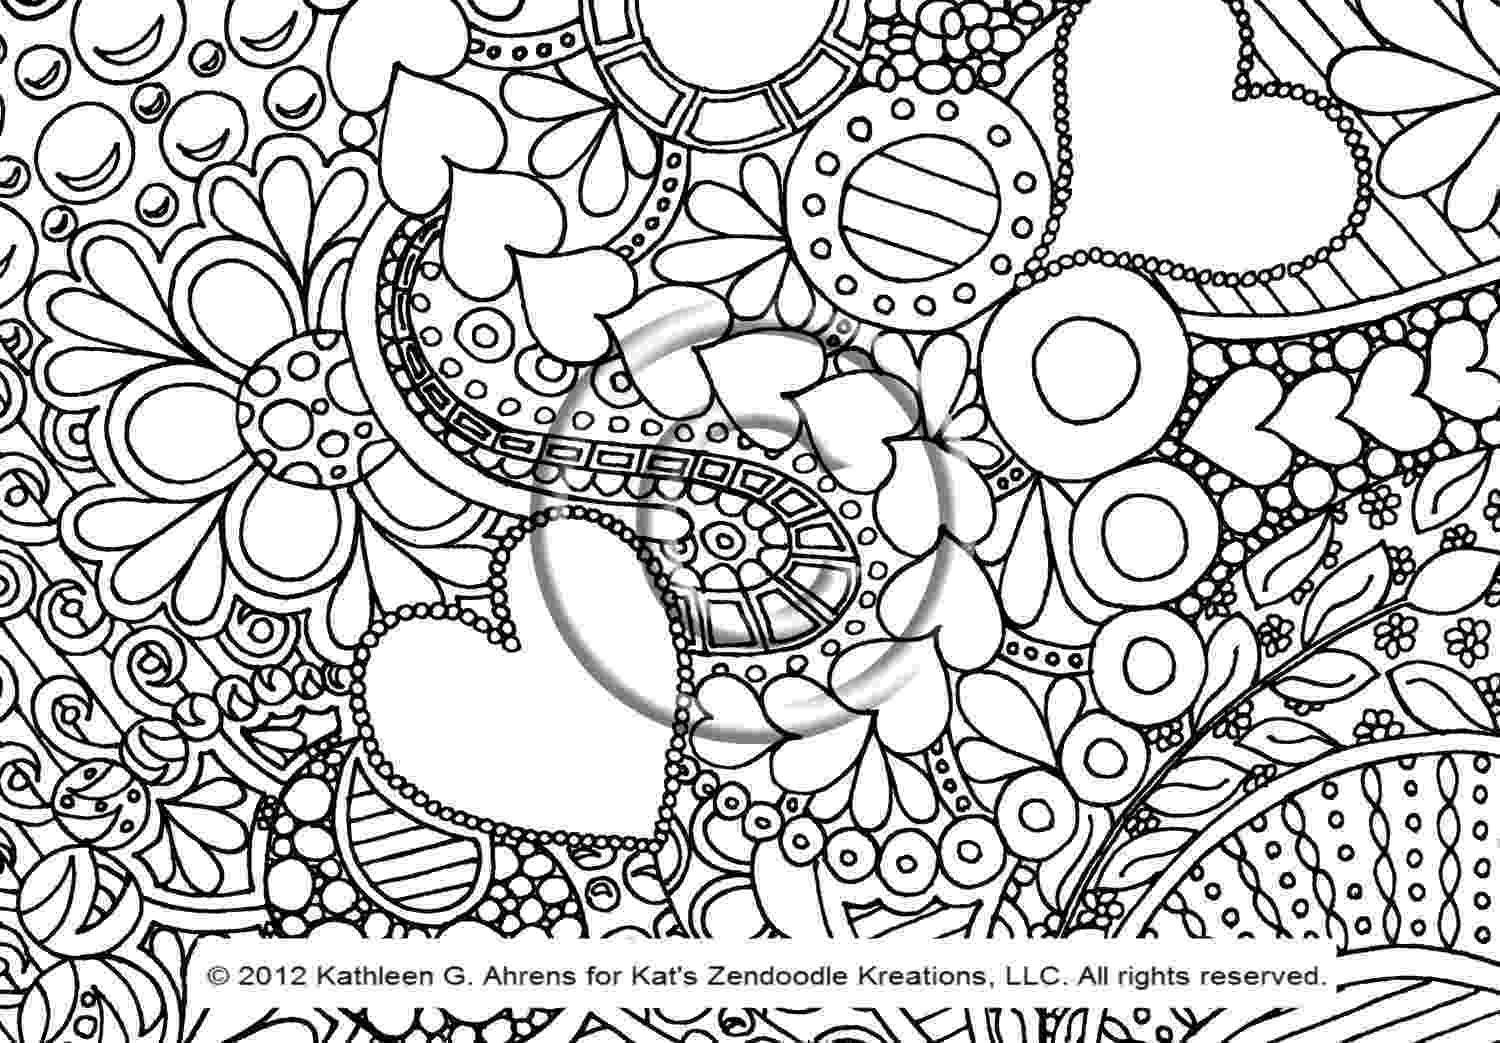 free printable patterns to colour free printable geometric coloring pages for kids patterns to free printable colour